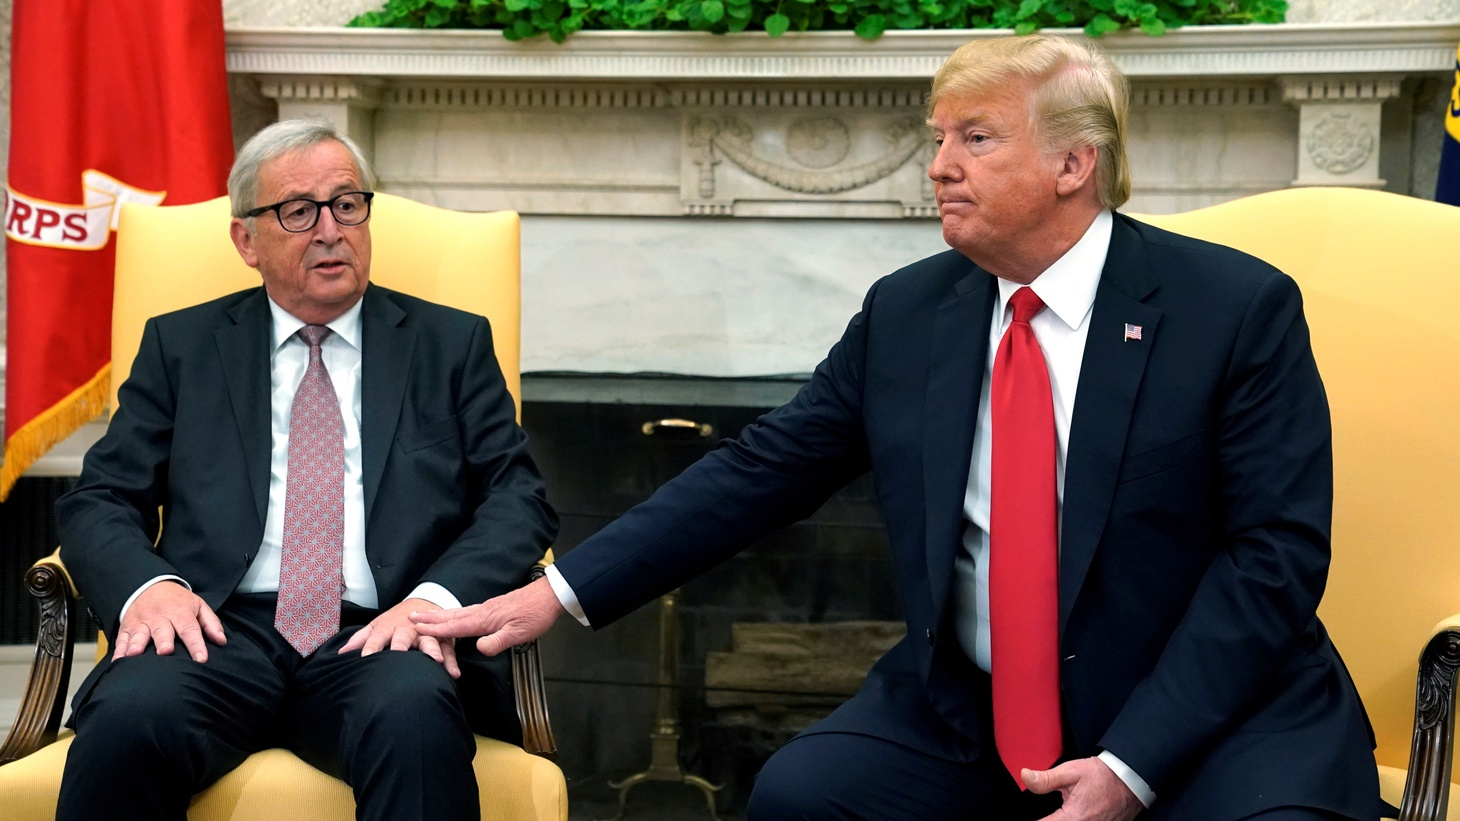 President Trump and Jean-Claude Juncker had very friendly meetings on trade and tariffs.